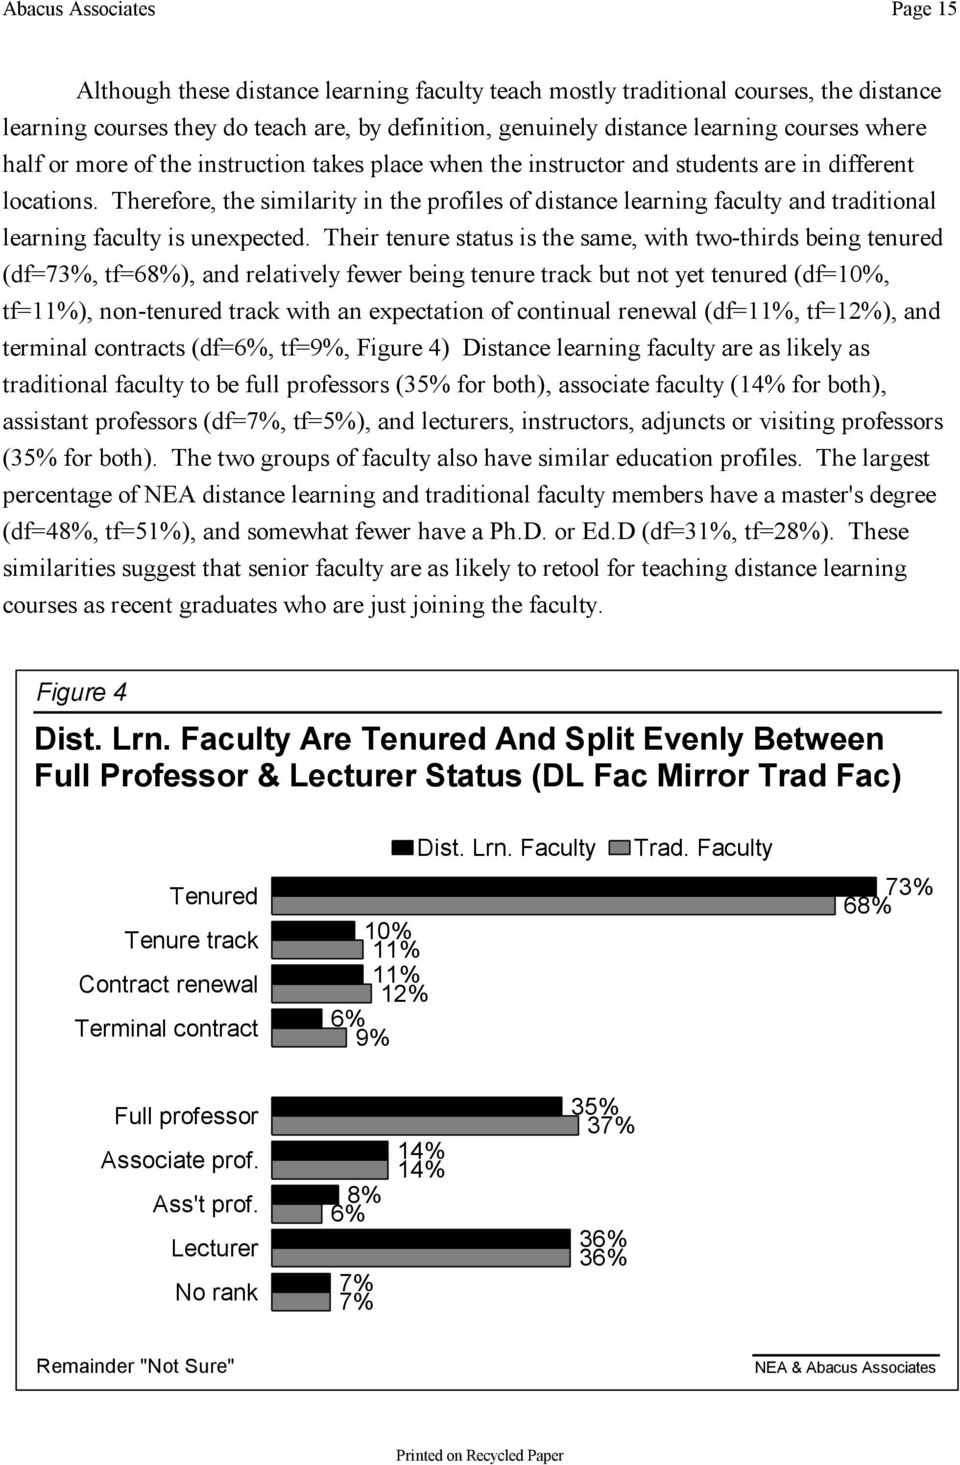 Therefore, the similarity in the profiles of distance learning faculty and traditional learning faculty is unexpected.